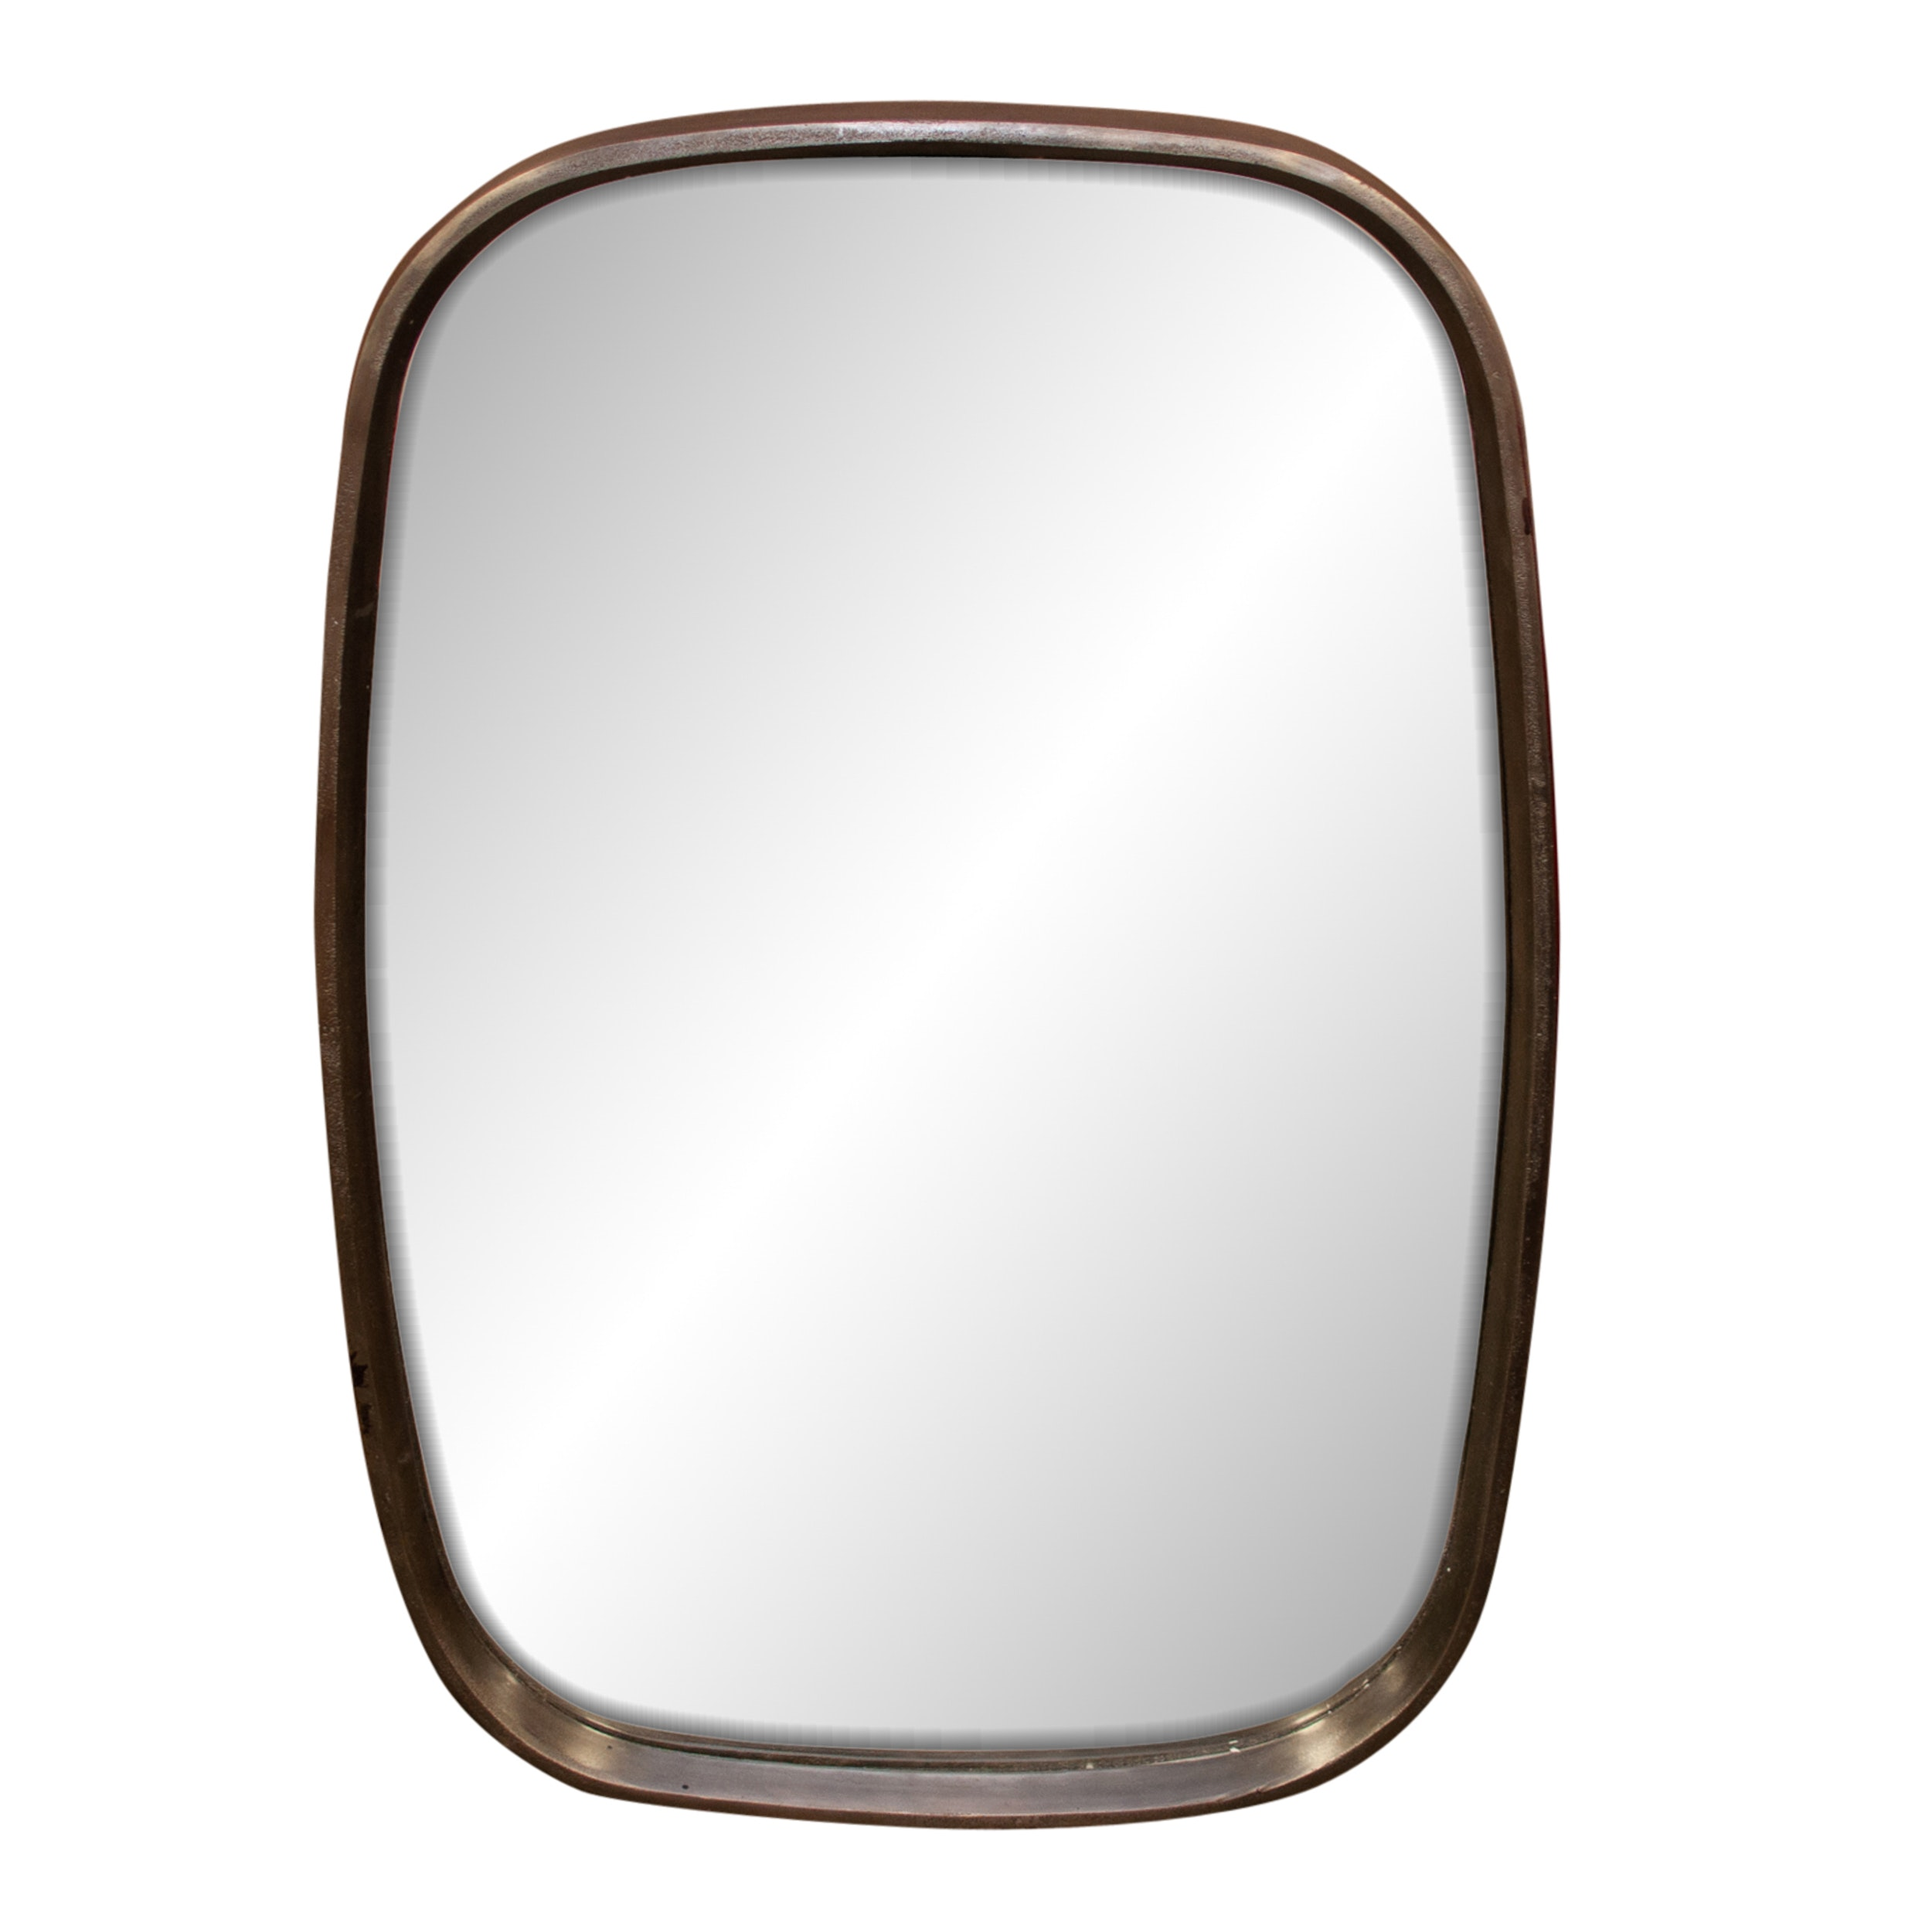 Rounded Metal Wall Mirror by Renwil, Contemporary